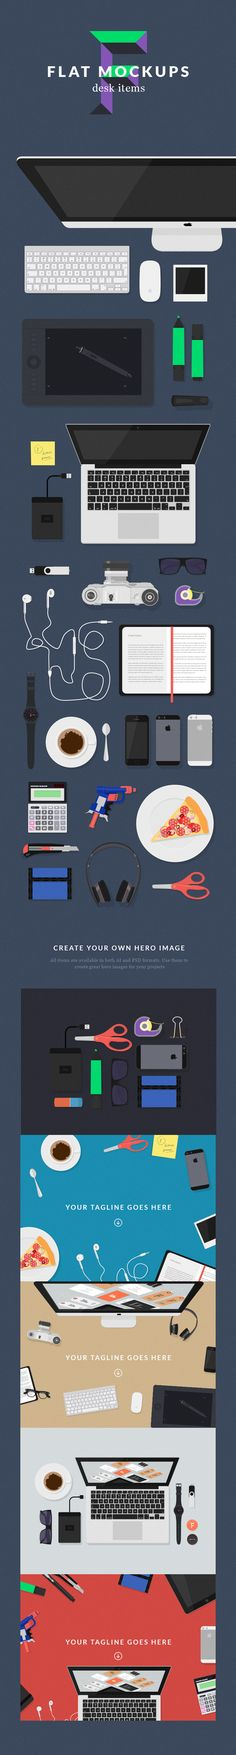 Totally Free Hero Images and Header Kits